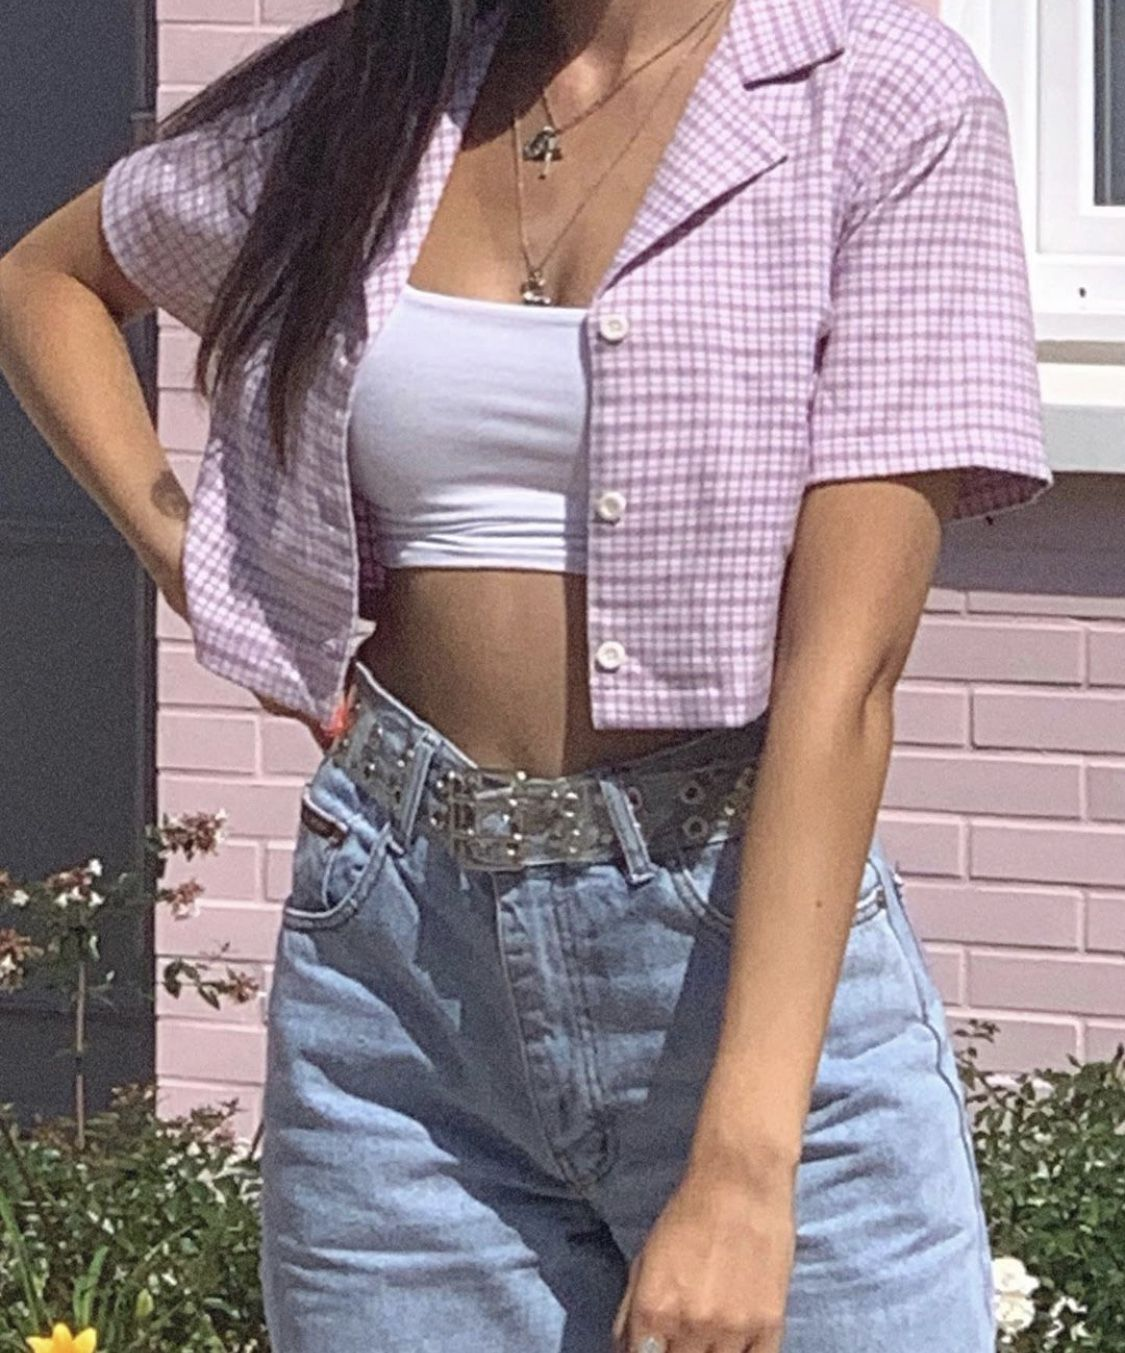 Fitness Soft Girl Aesthetic Outfit Spring Soft Girl Aesthetic Outfit In 2020 Fashion Inspo Outfits Retro Outfits 90s Fashion Outfits